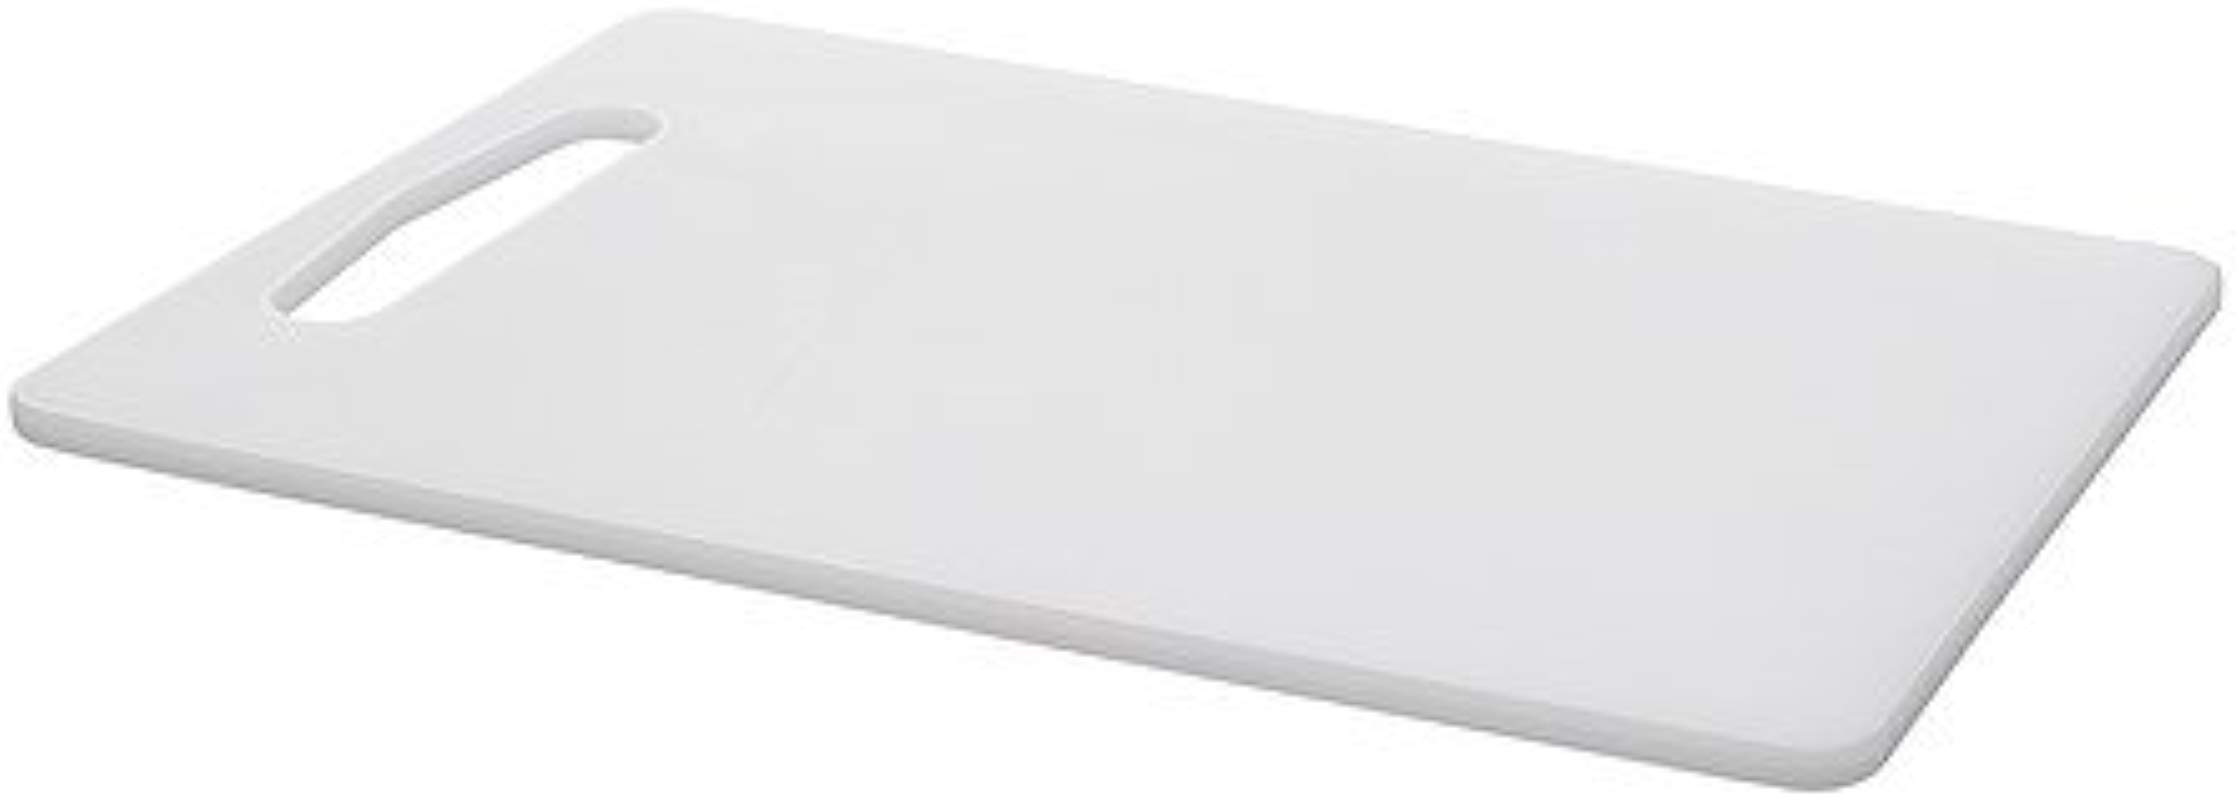 IKEA LEGITIM Chopping Board White 2 PACK